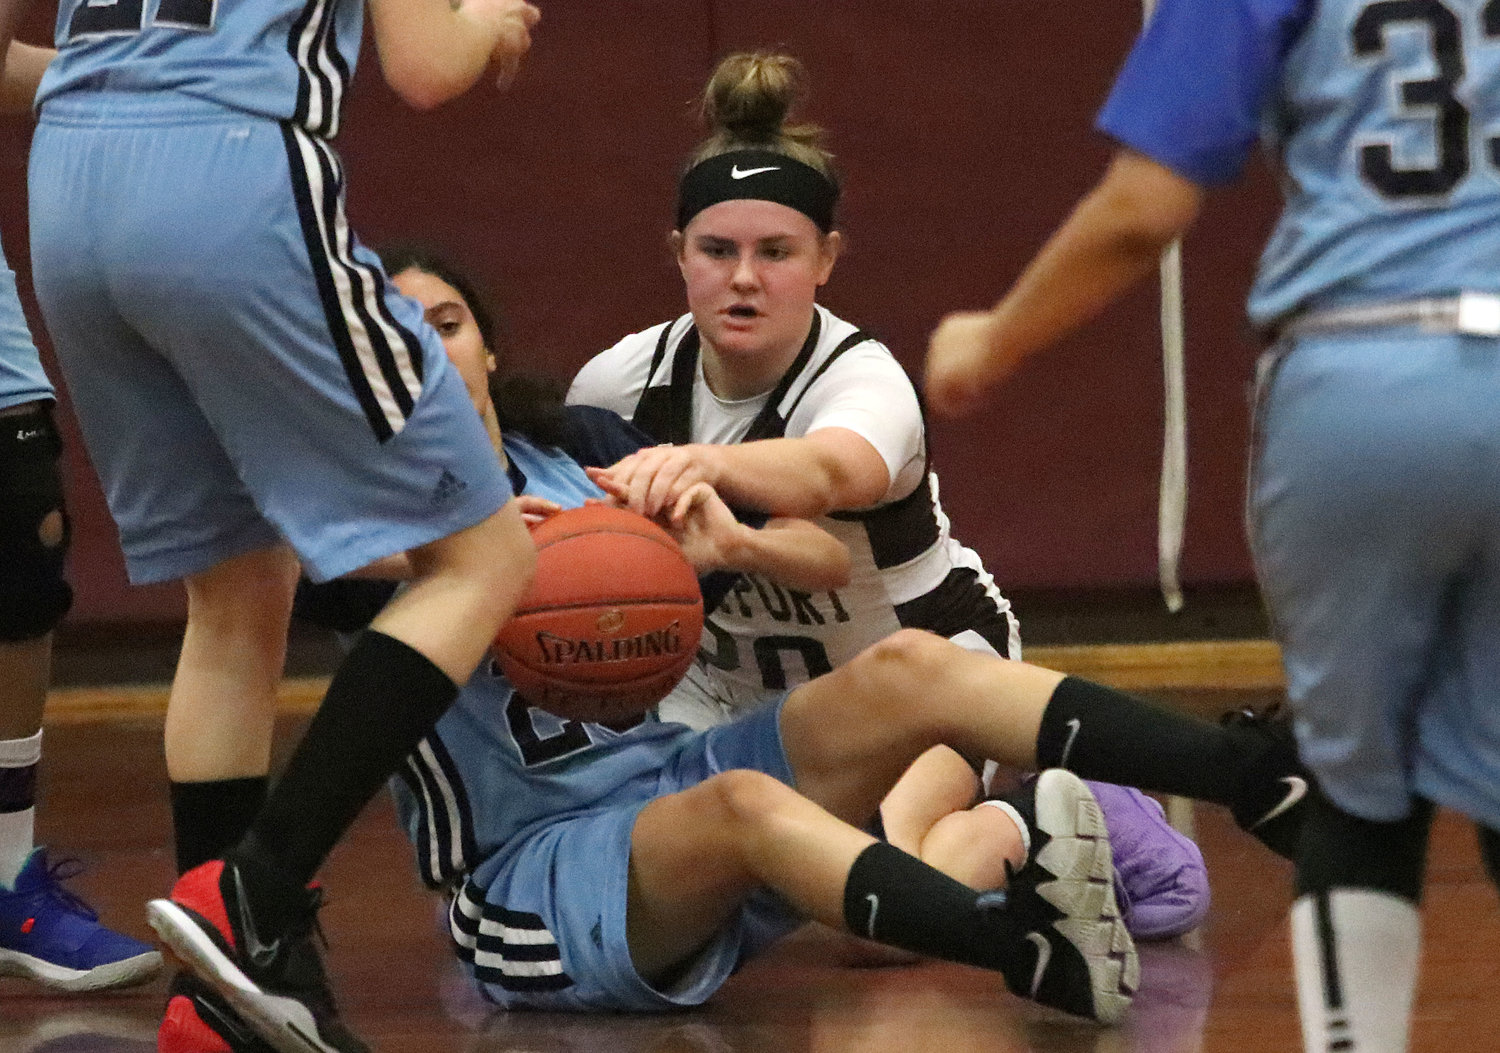 Team captain Jess Carney fights for a loose ball.